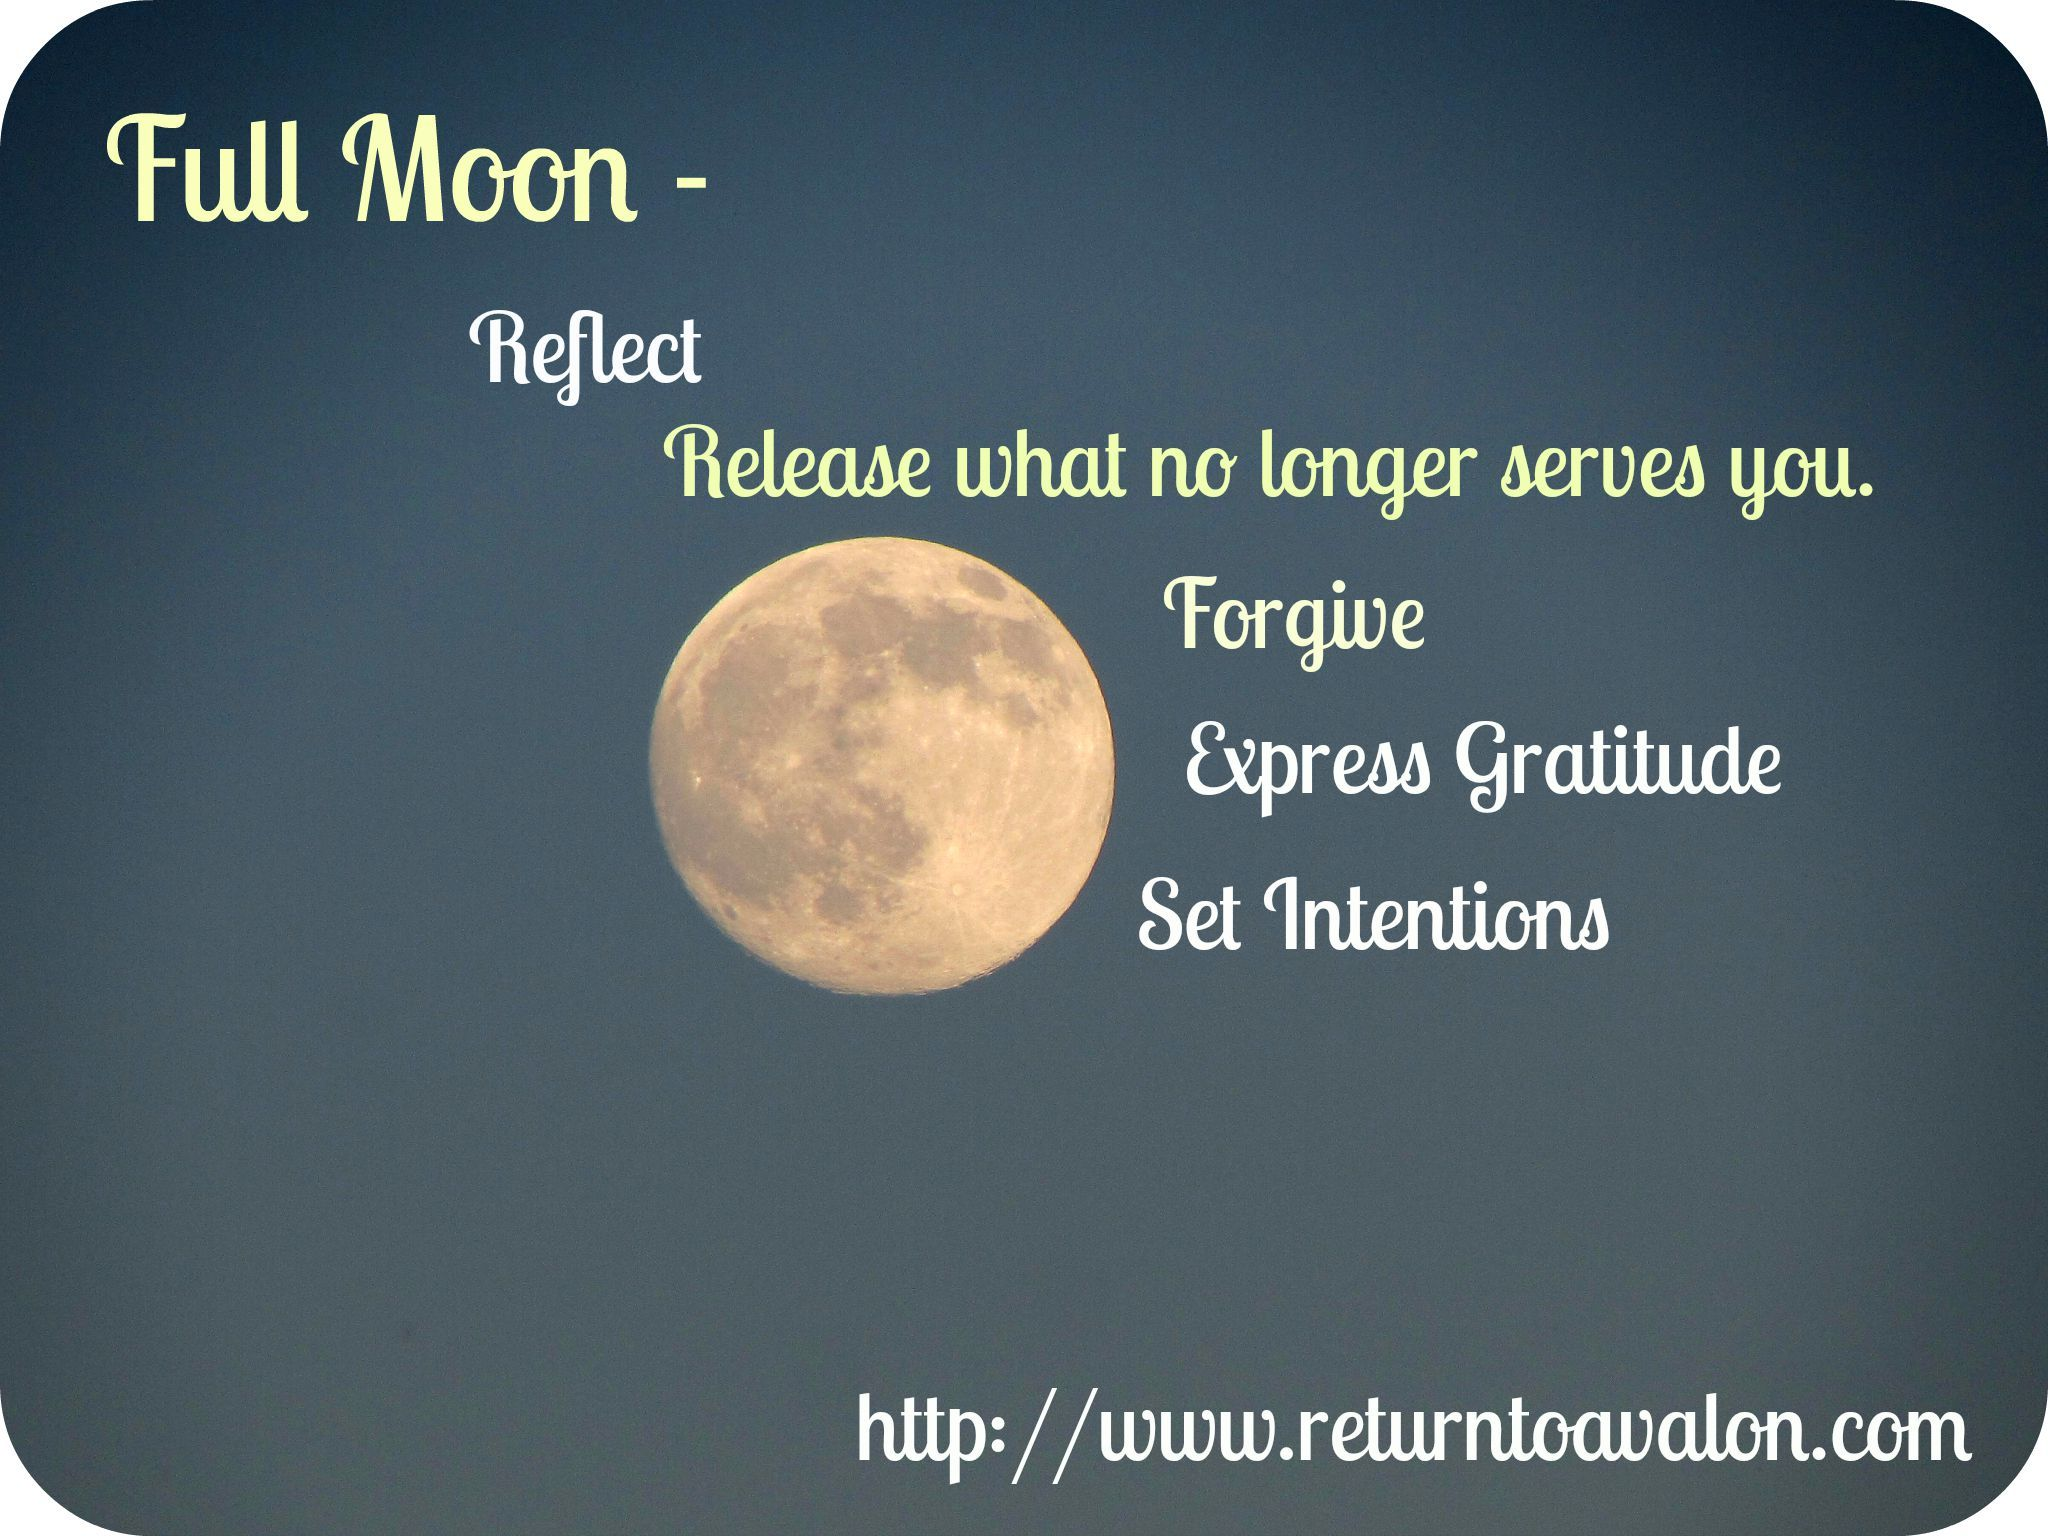 Full Moon- reflect, release, forgive, express gratitude, set intentions